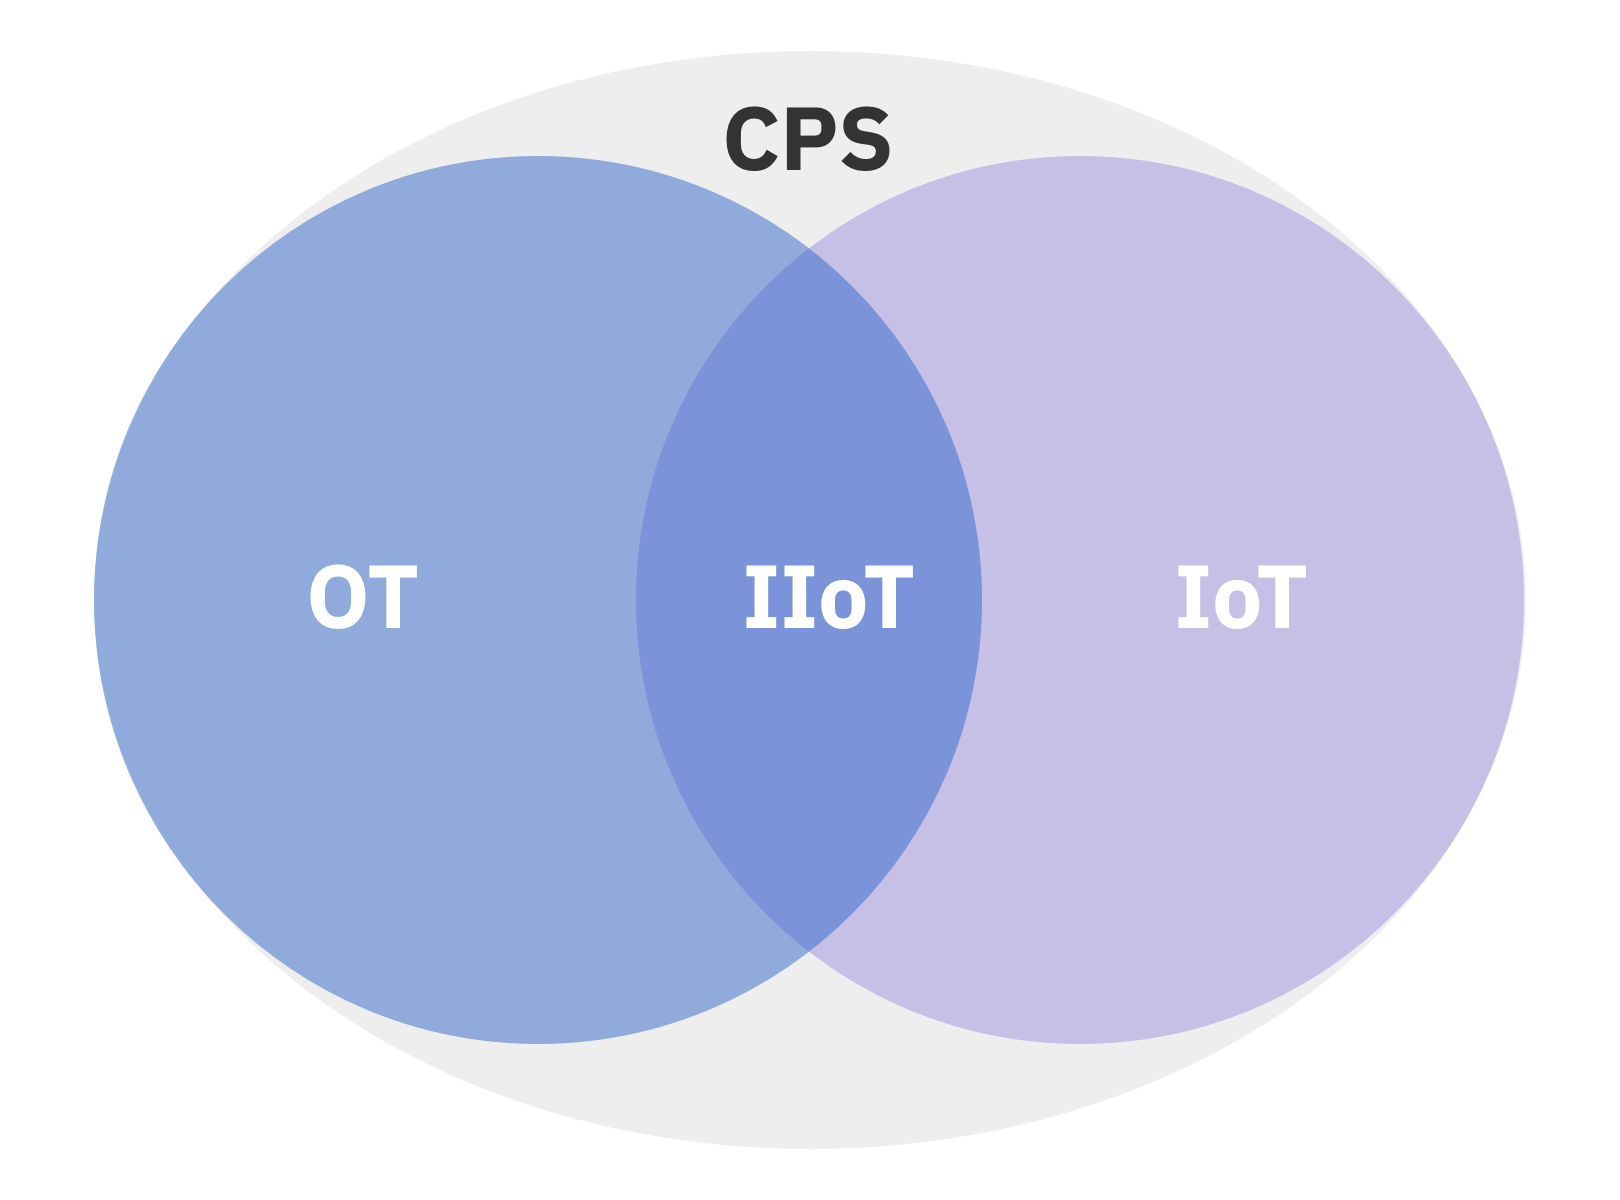 cps, ot, it, and iiot relationship